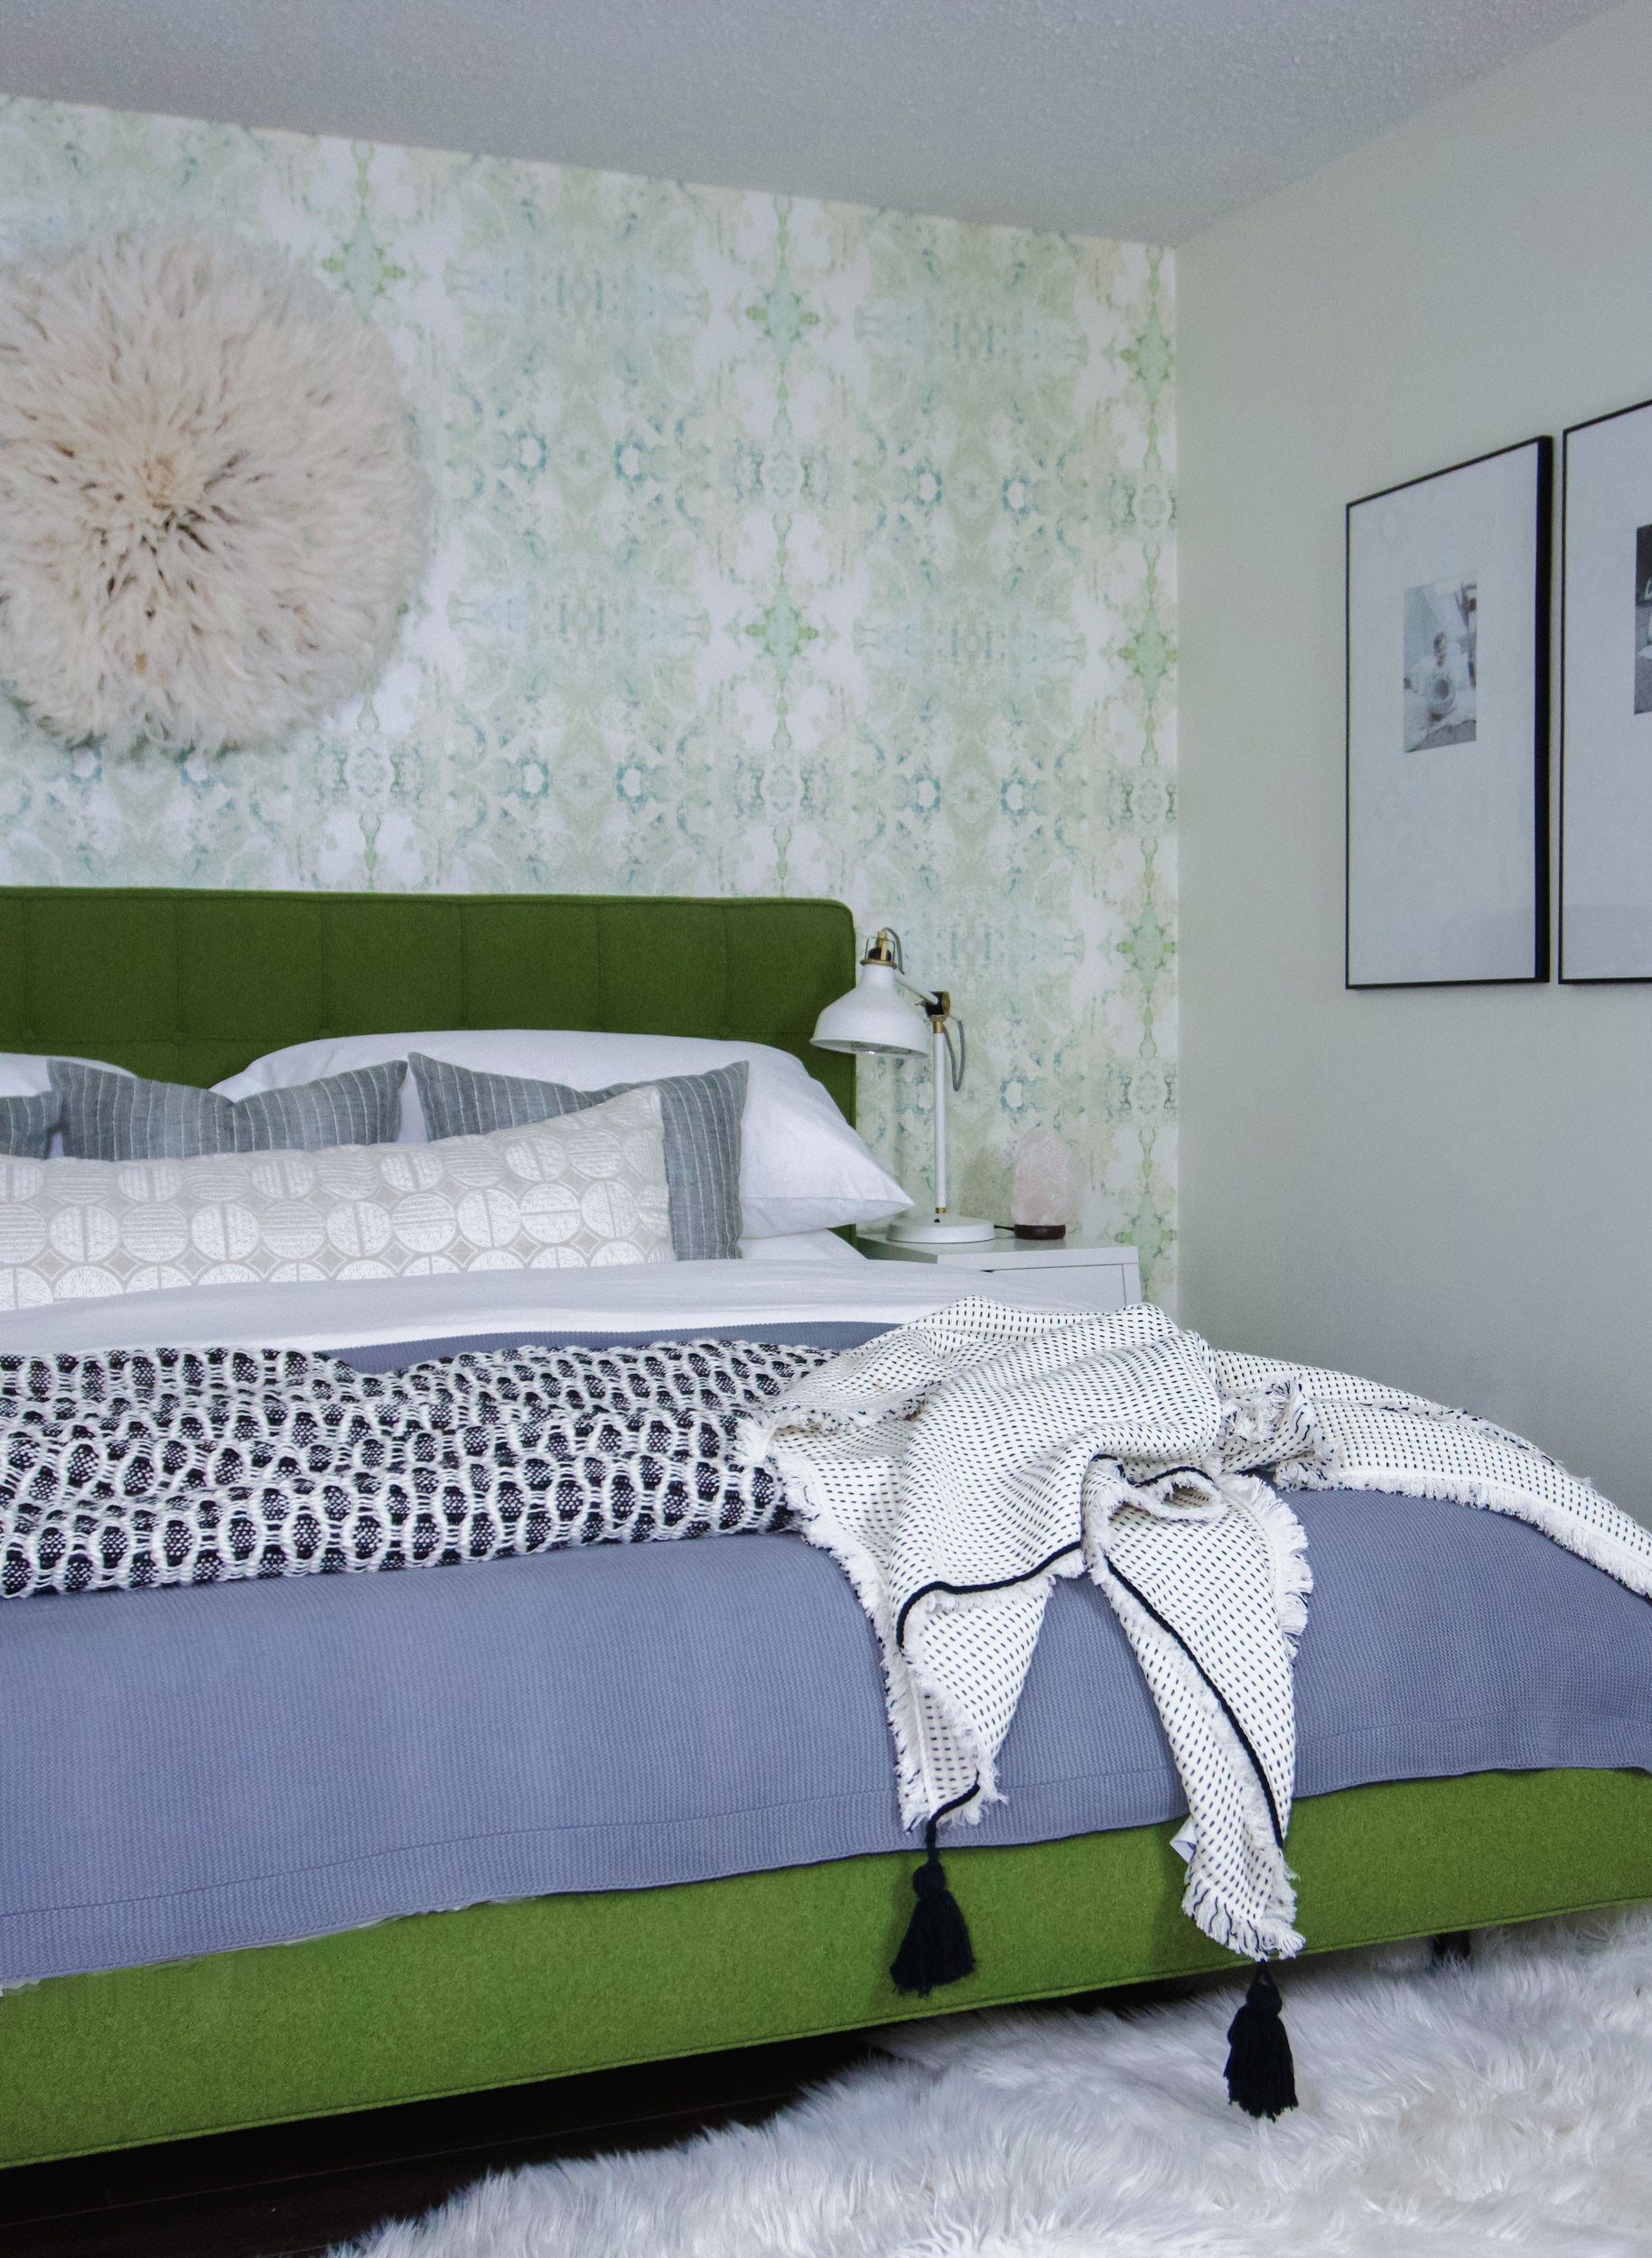 A beautiful bedroom with green flowered wallpaper and photos on the wall, and a throw blanket on the edge of the bed